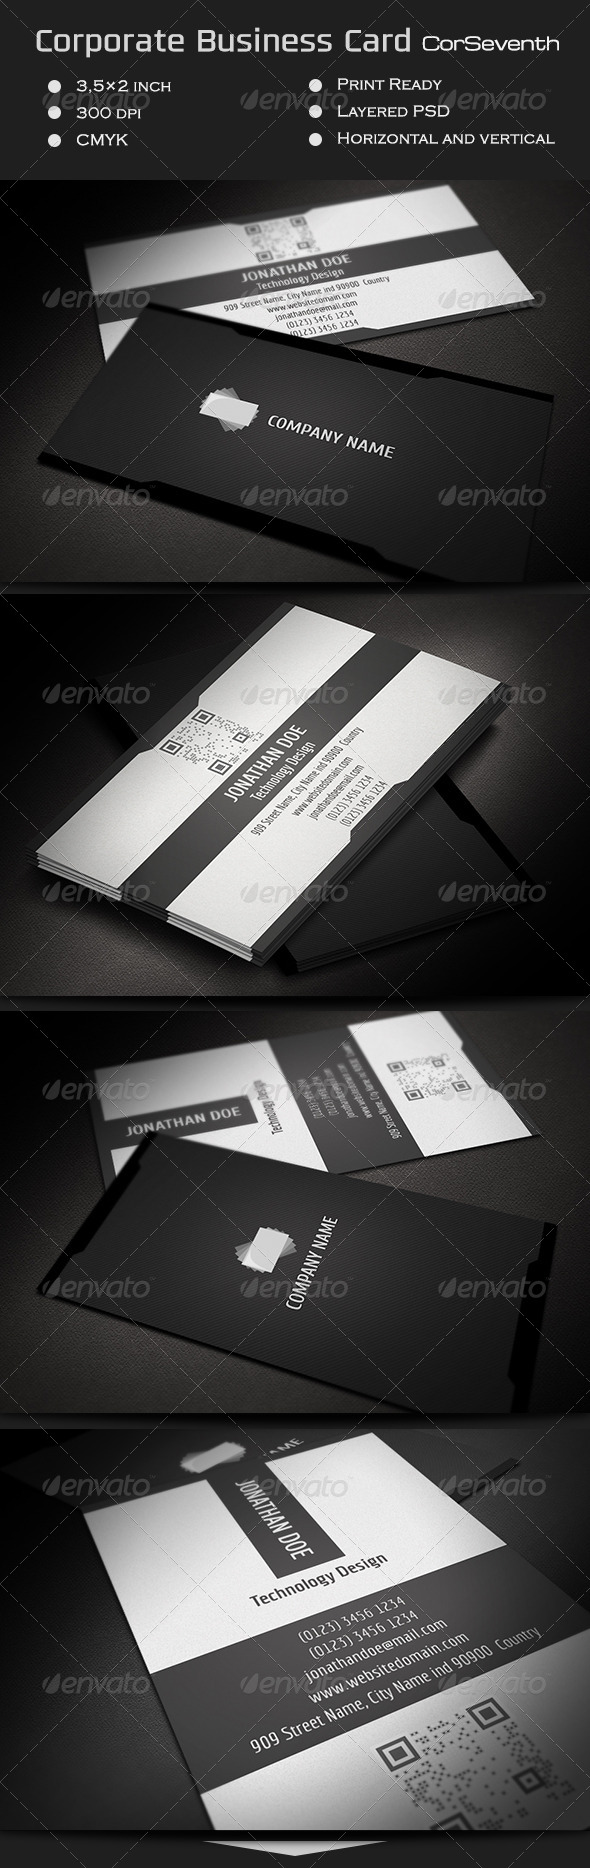 Corporate Business Card CorSeventh - Corporate Business Cards